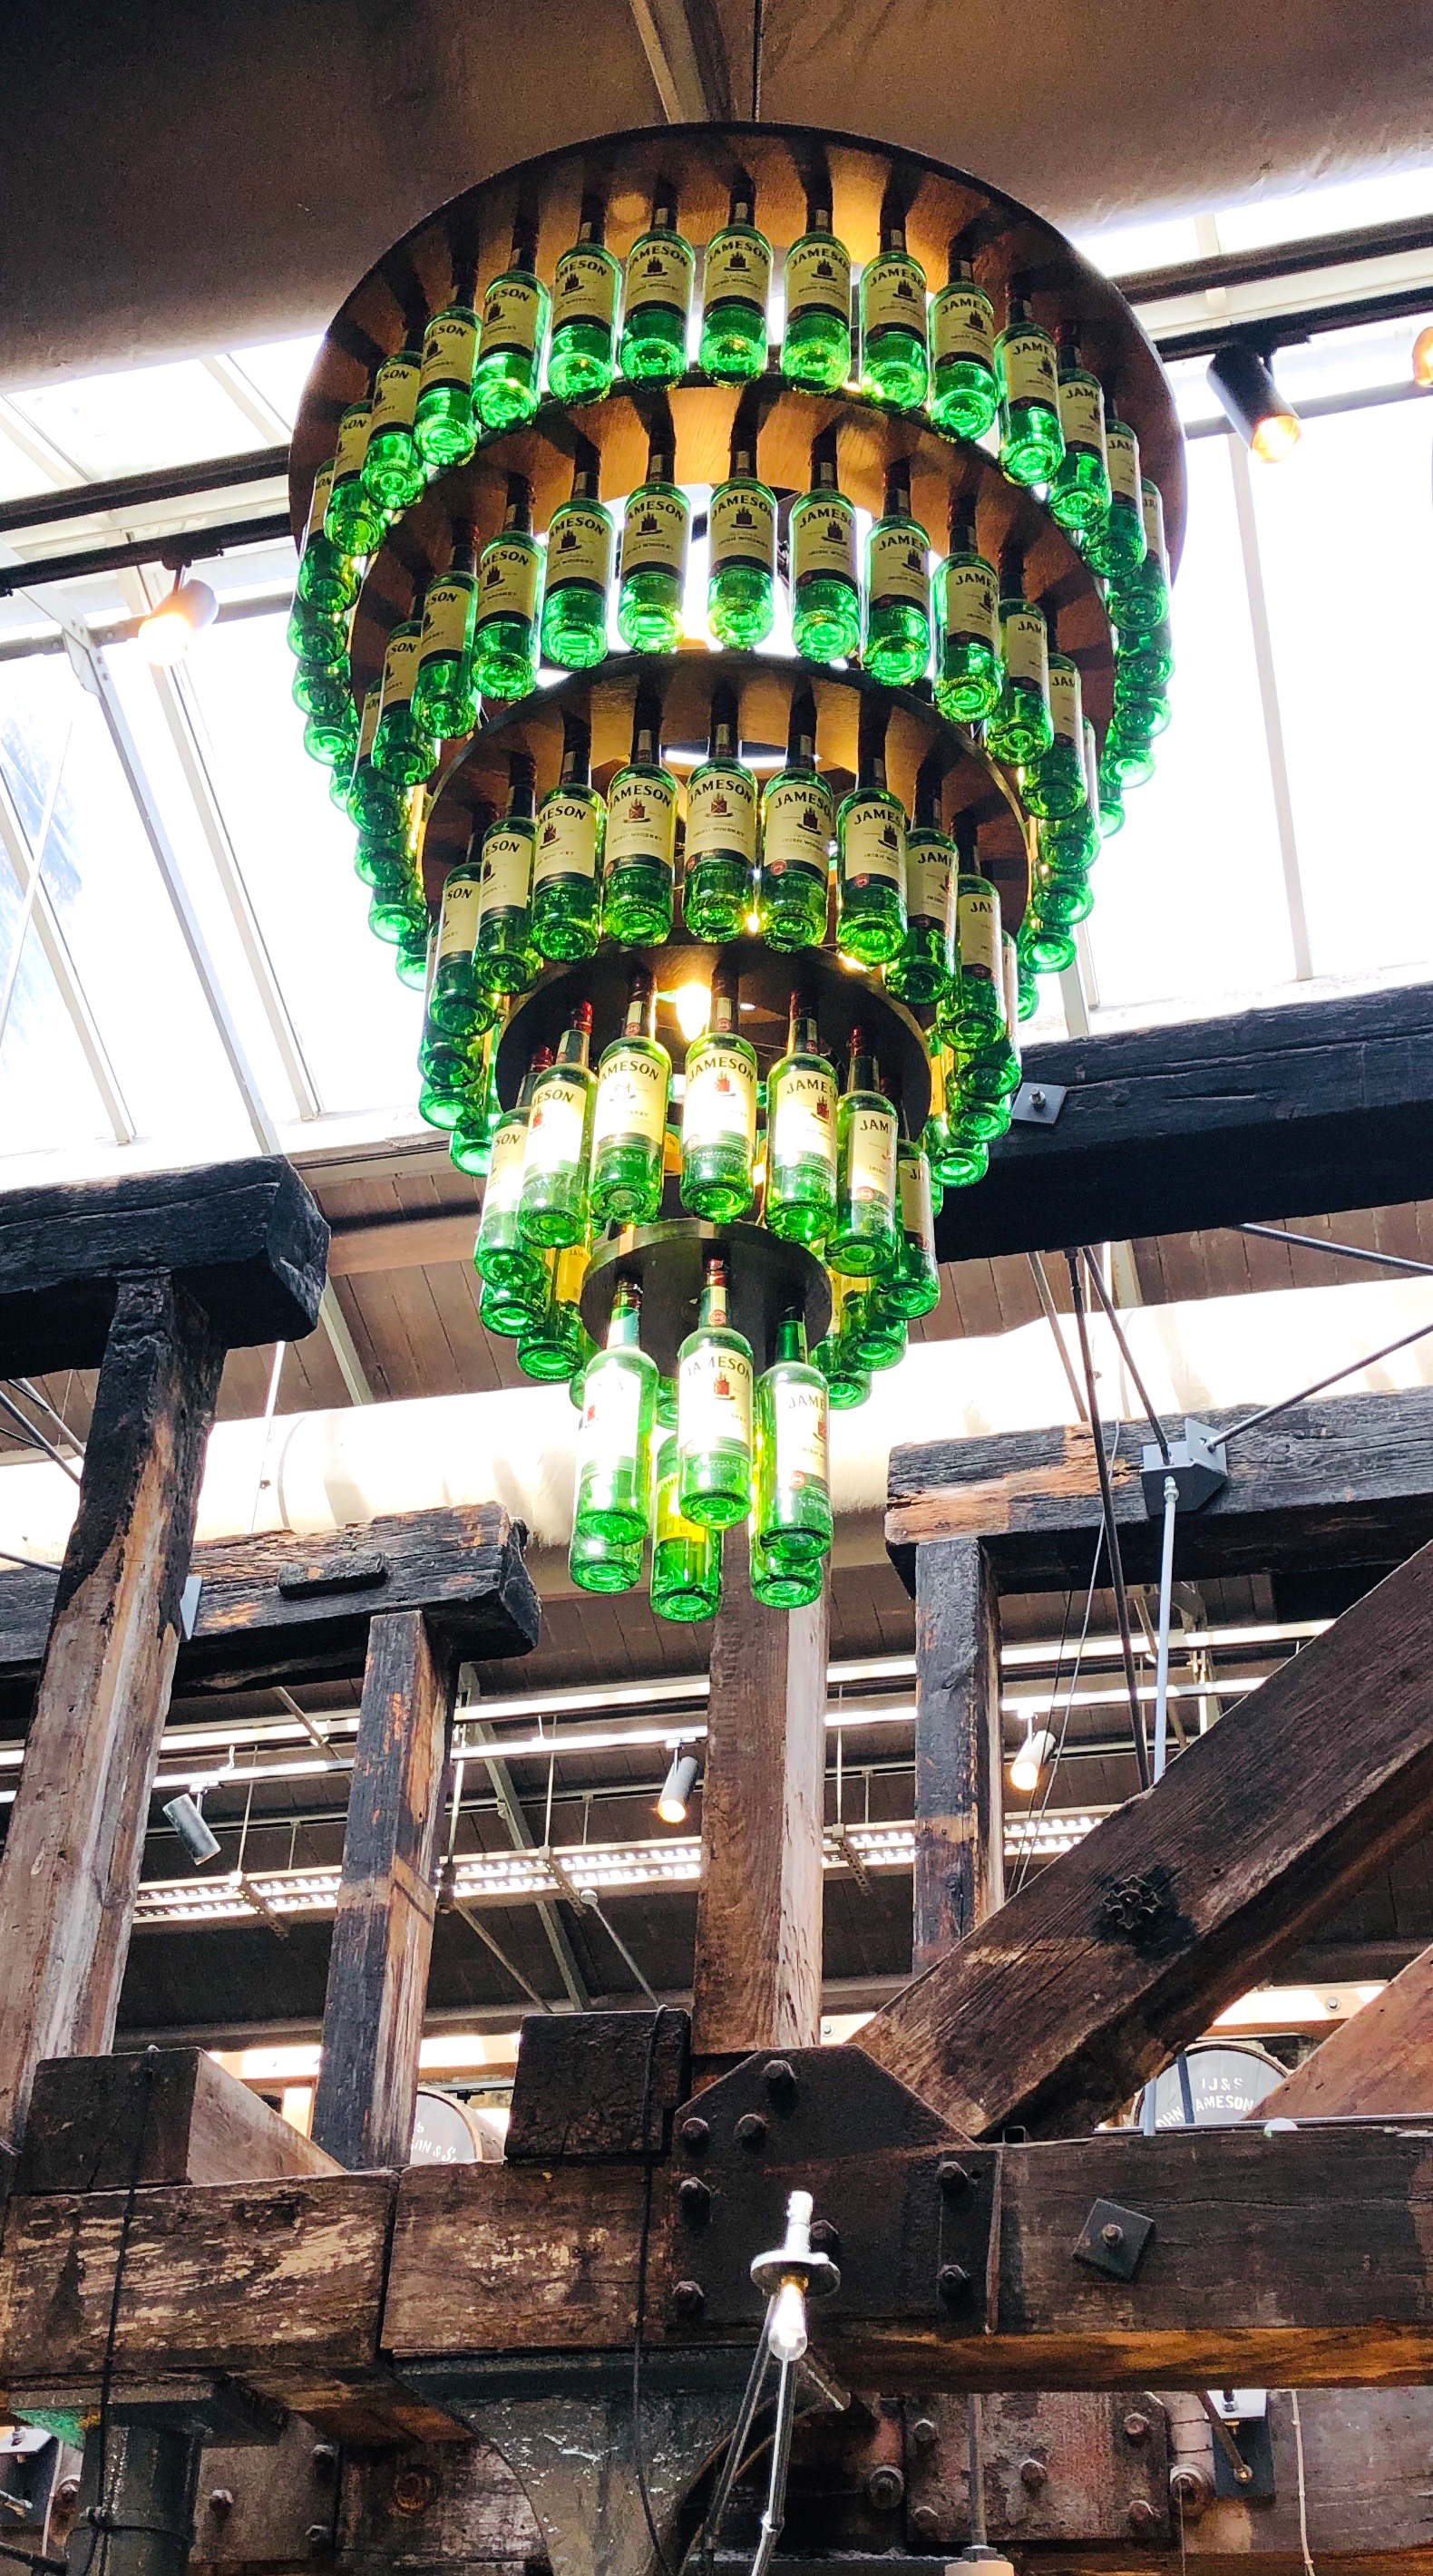 Can one guess how many green bottles are hanging above?  | Dublin | STIRworld